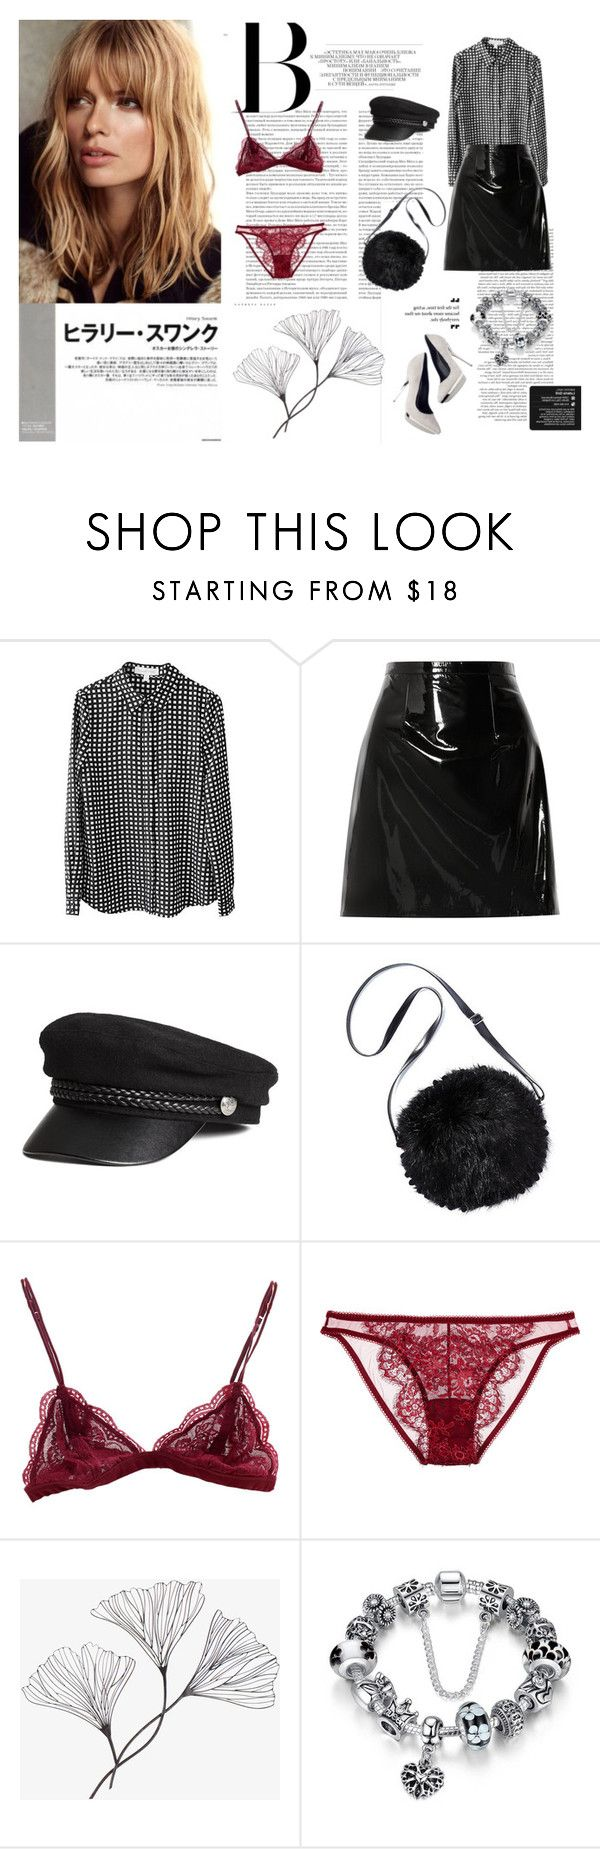 Strong woman by justy-na on Polyvore featuring moda, Finders Keepers, Christopher Kane, I.D. SARRIERI, Posh Girl and Versace